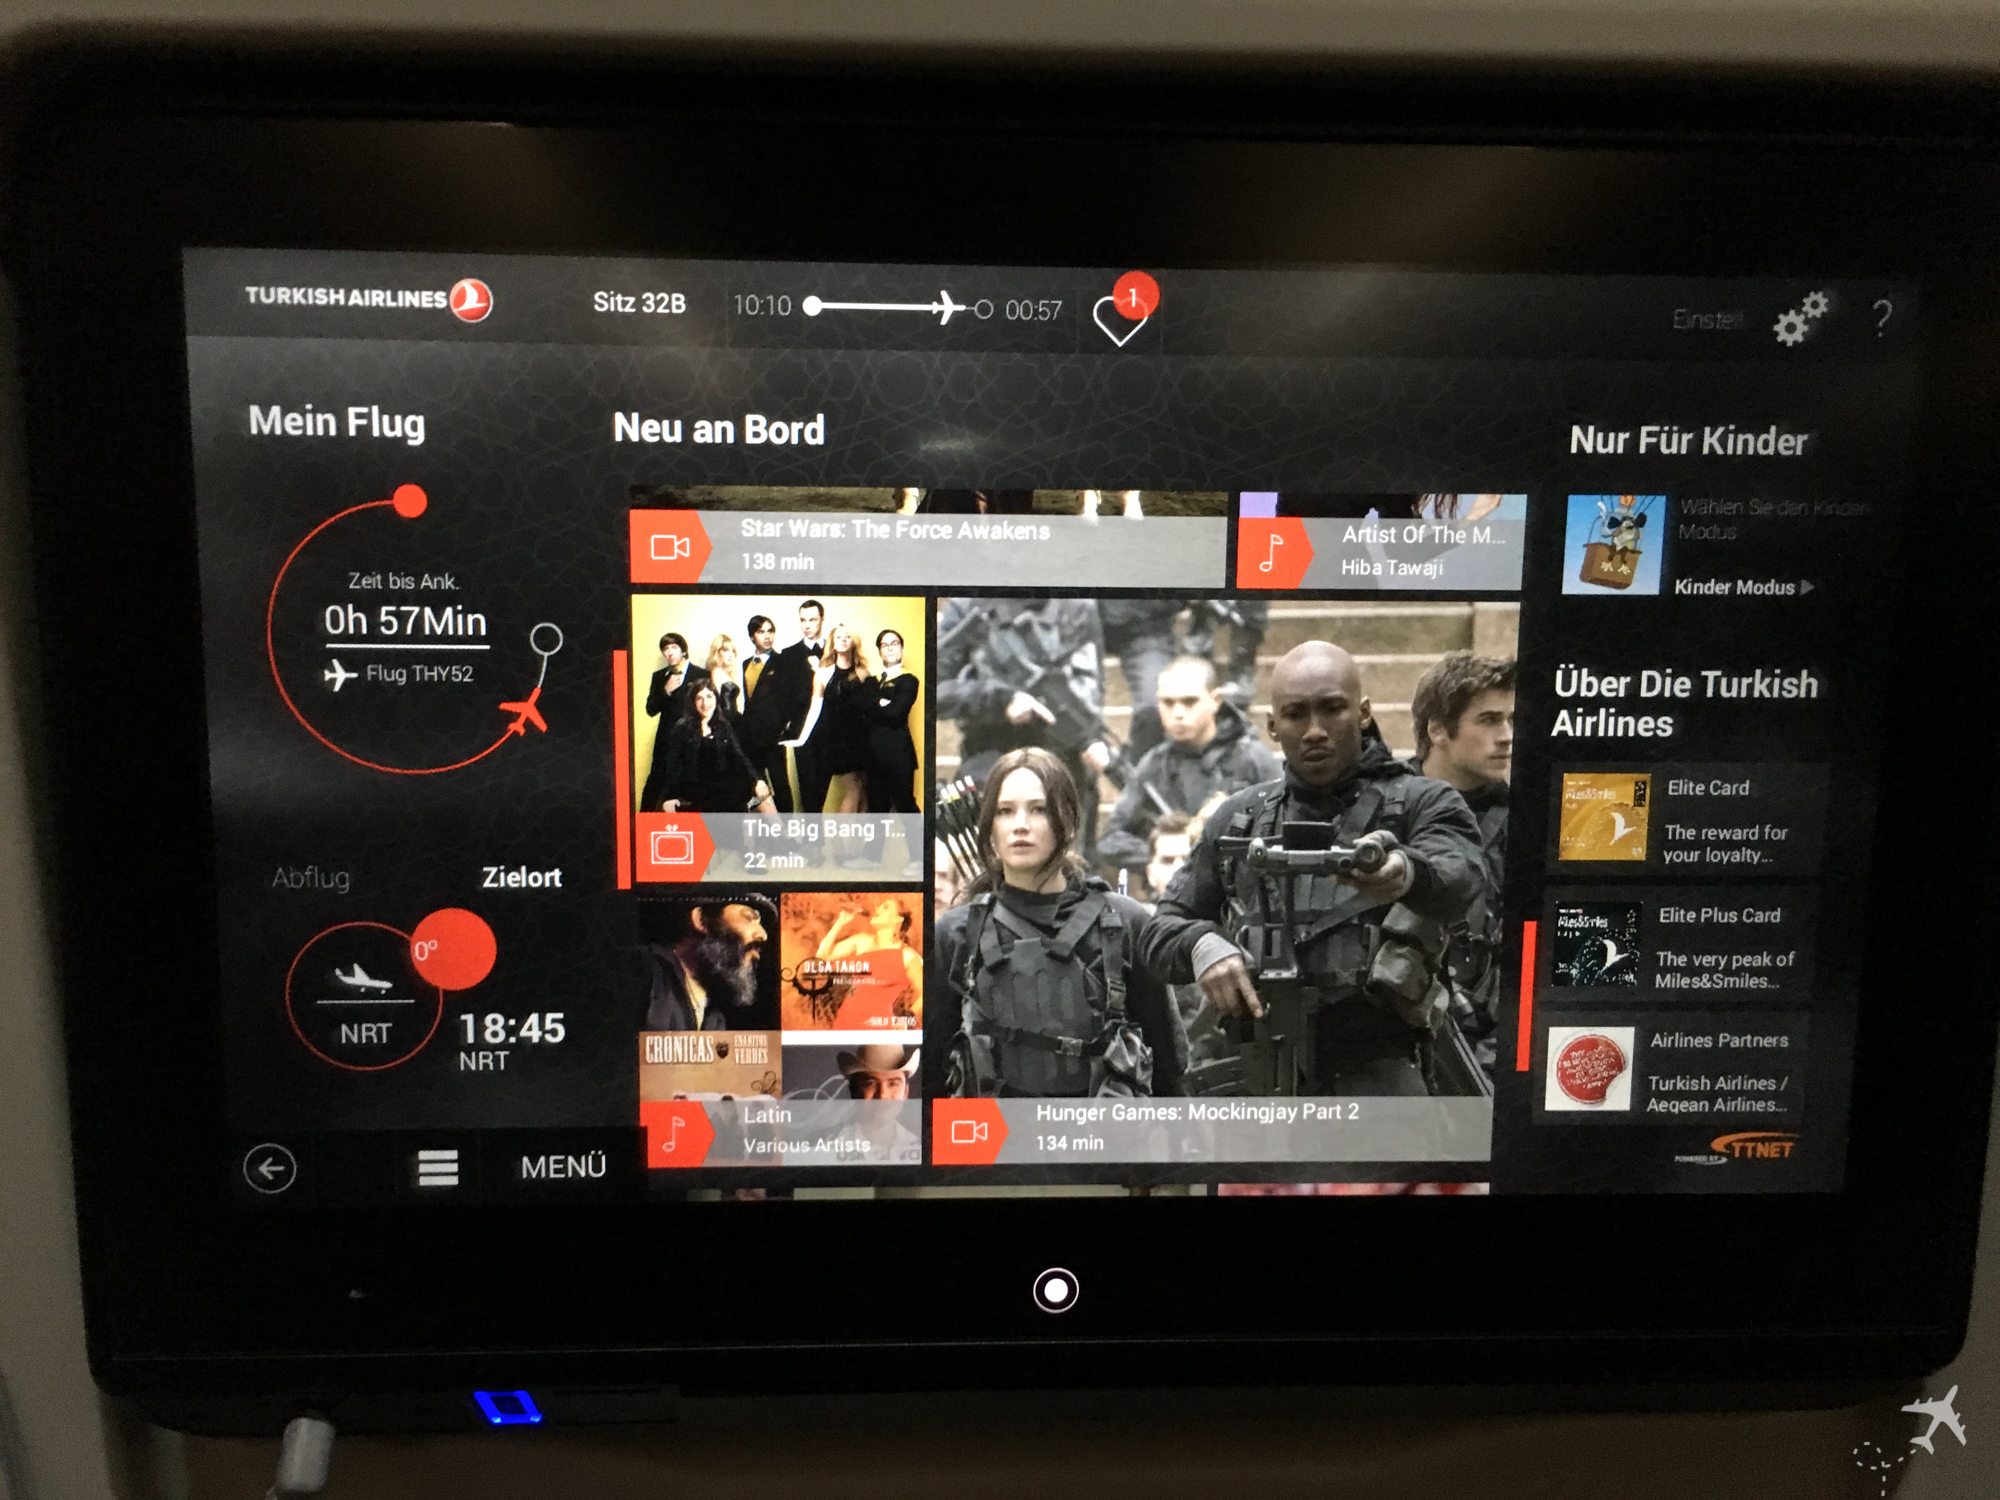 Turkish Airlines Economy Class Inflight Entertainment System